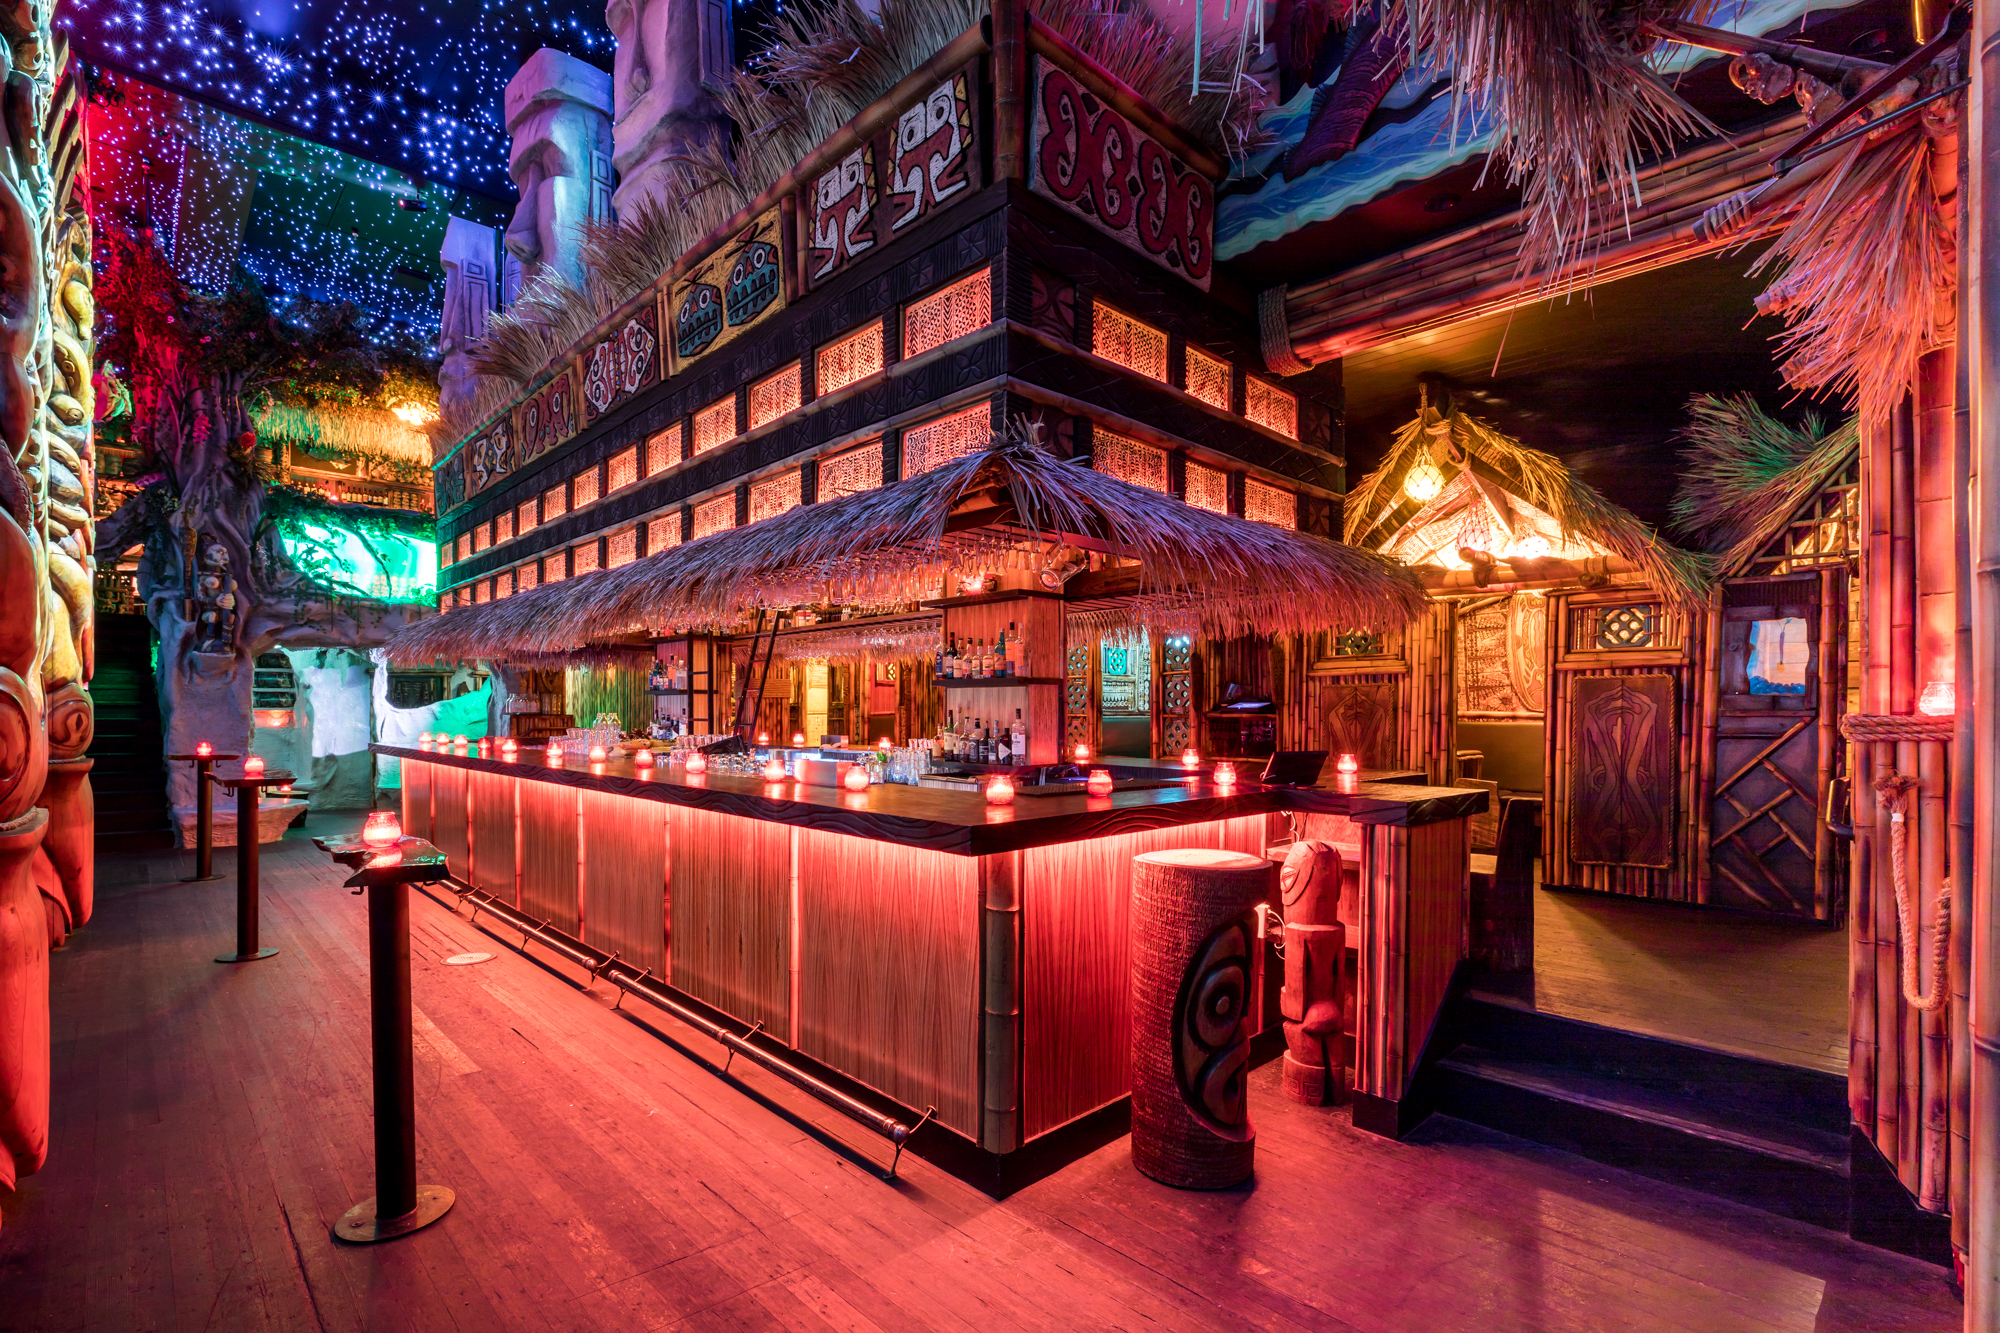 Enter Zombie Village, a New Tiki Temple Steeped in Bay Area Bar History